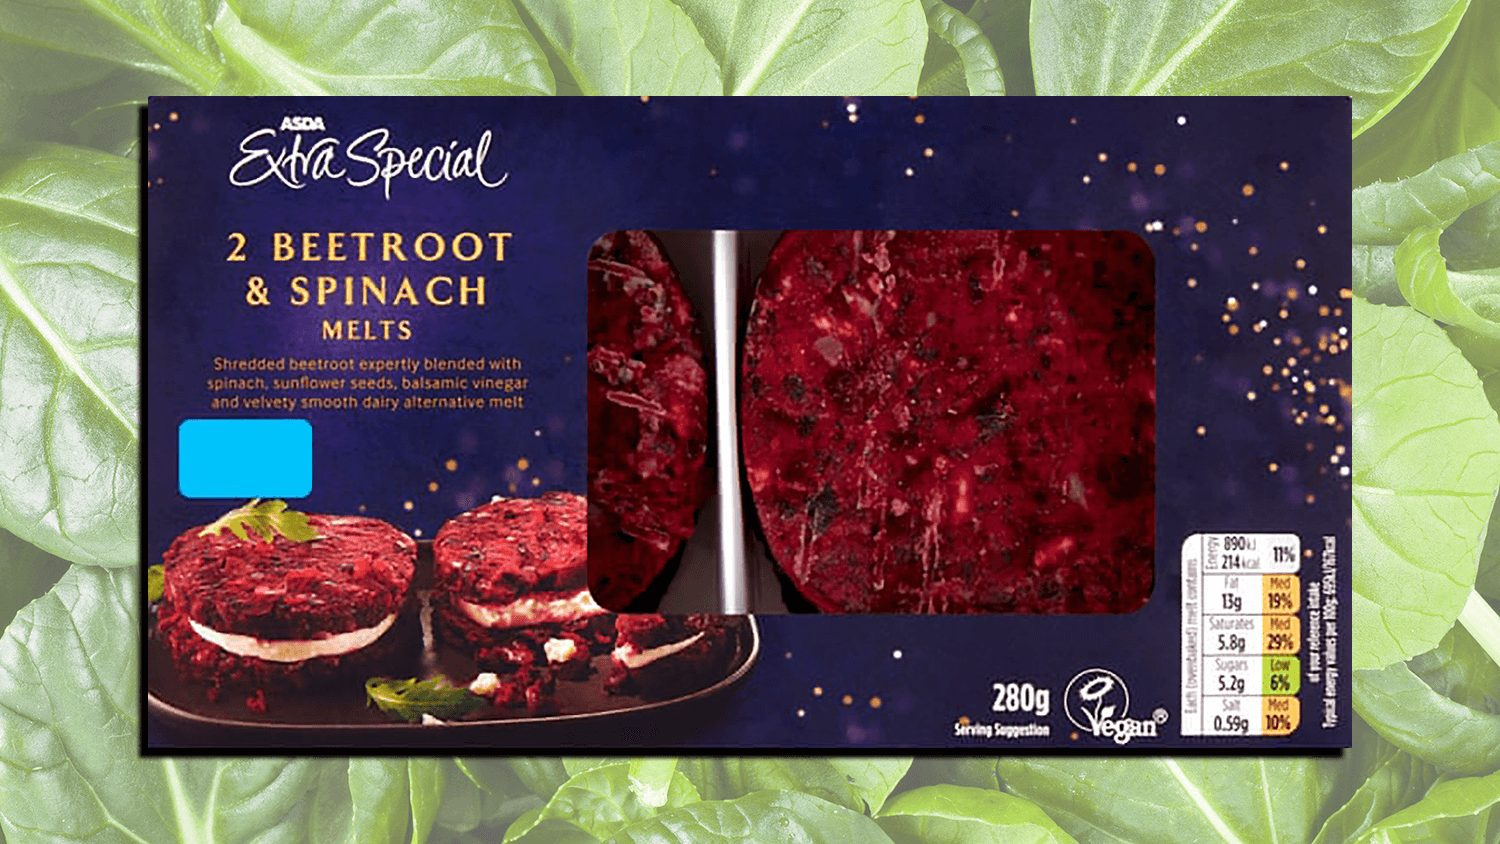 Vegan Beetroot Spinach Melts Now at ASDA